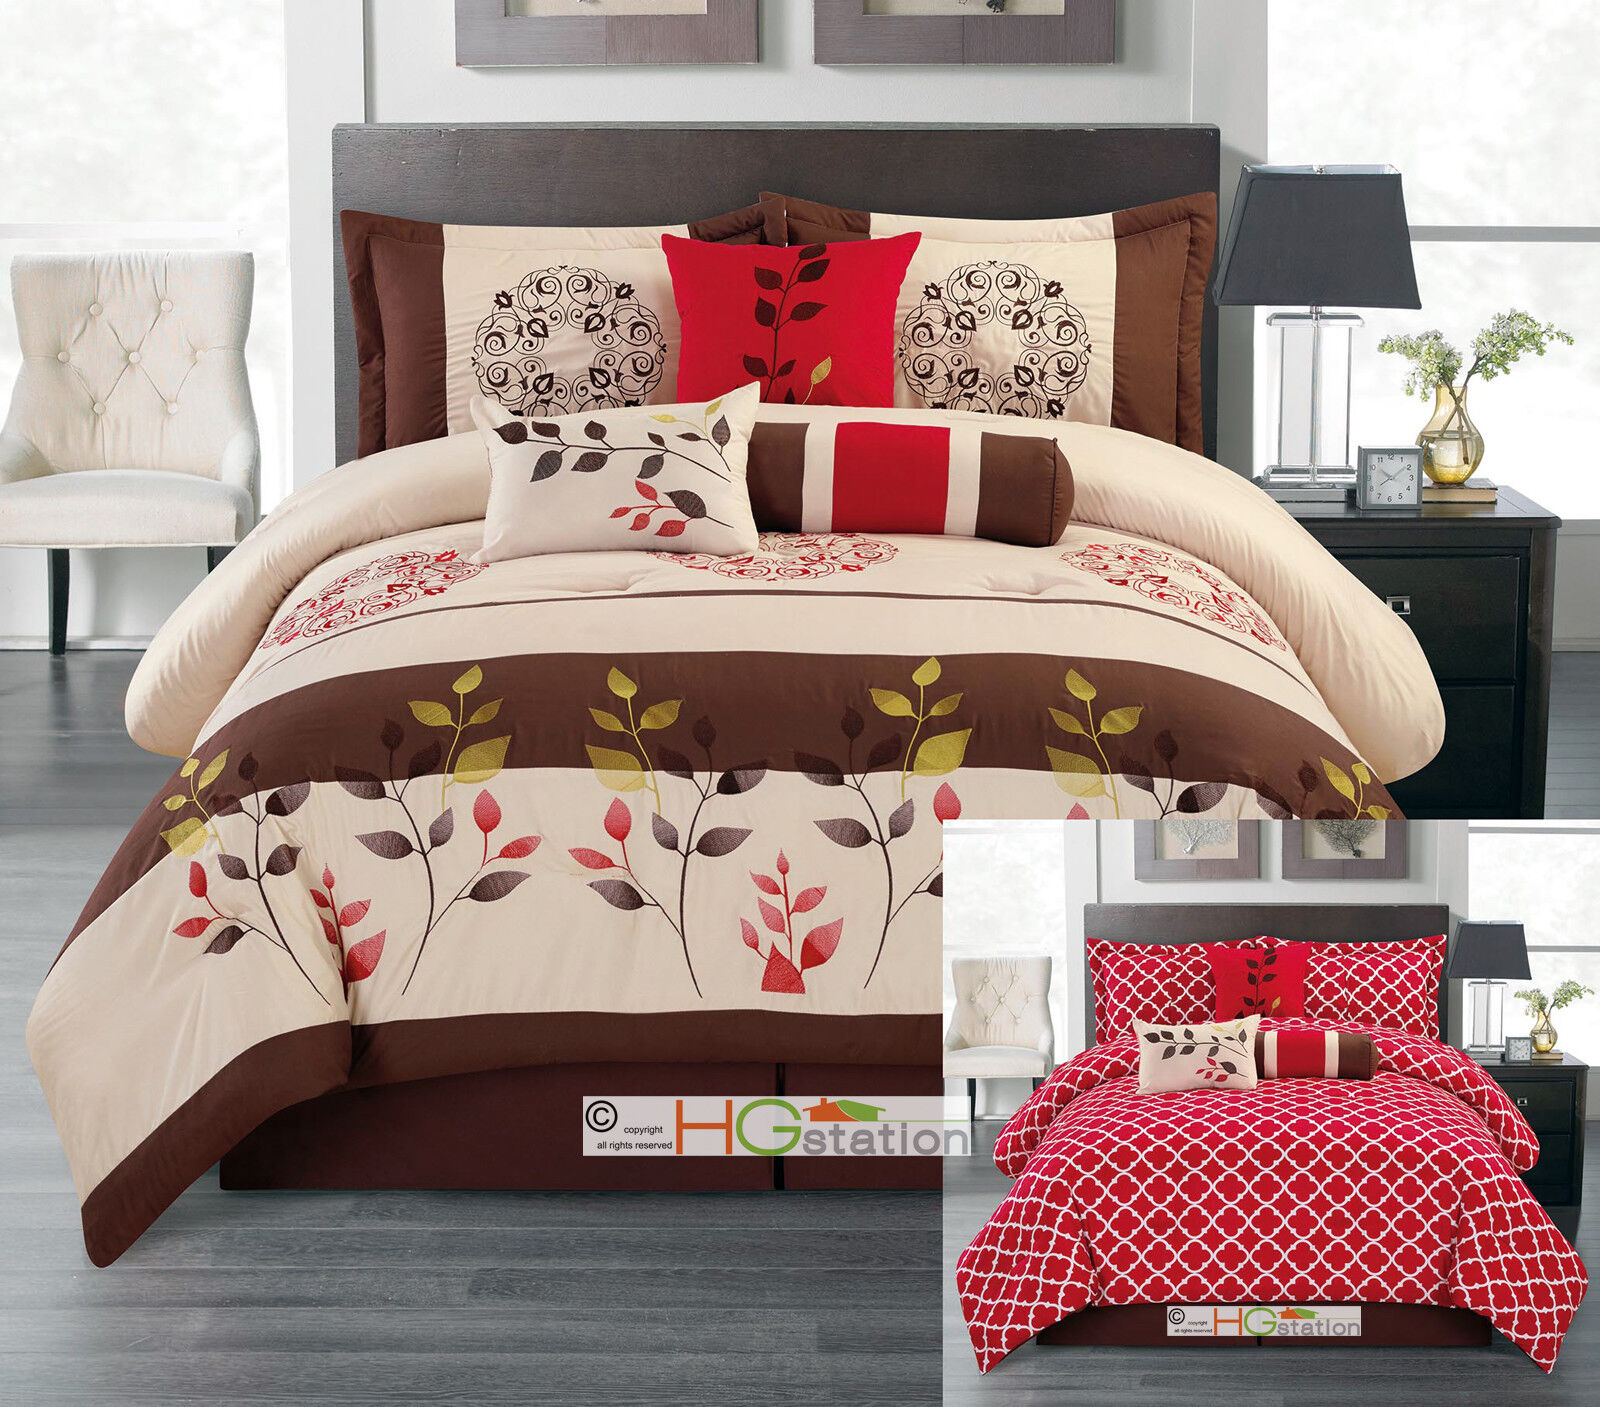 7-Pc Embroidery Floral Medallion Trellis Reversible Comforter Set braun rot King